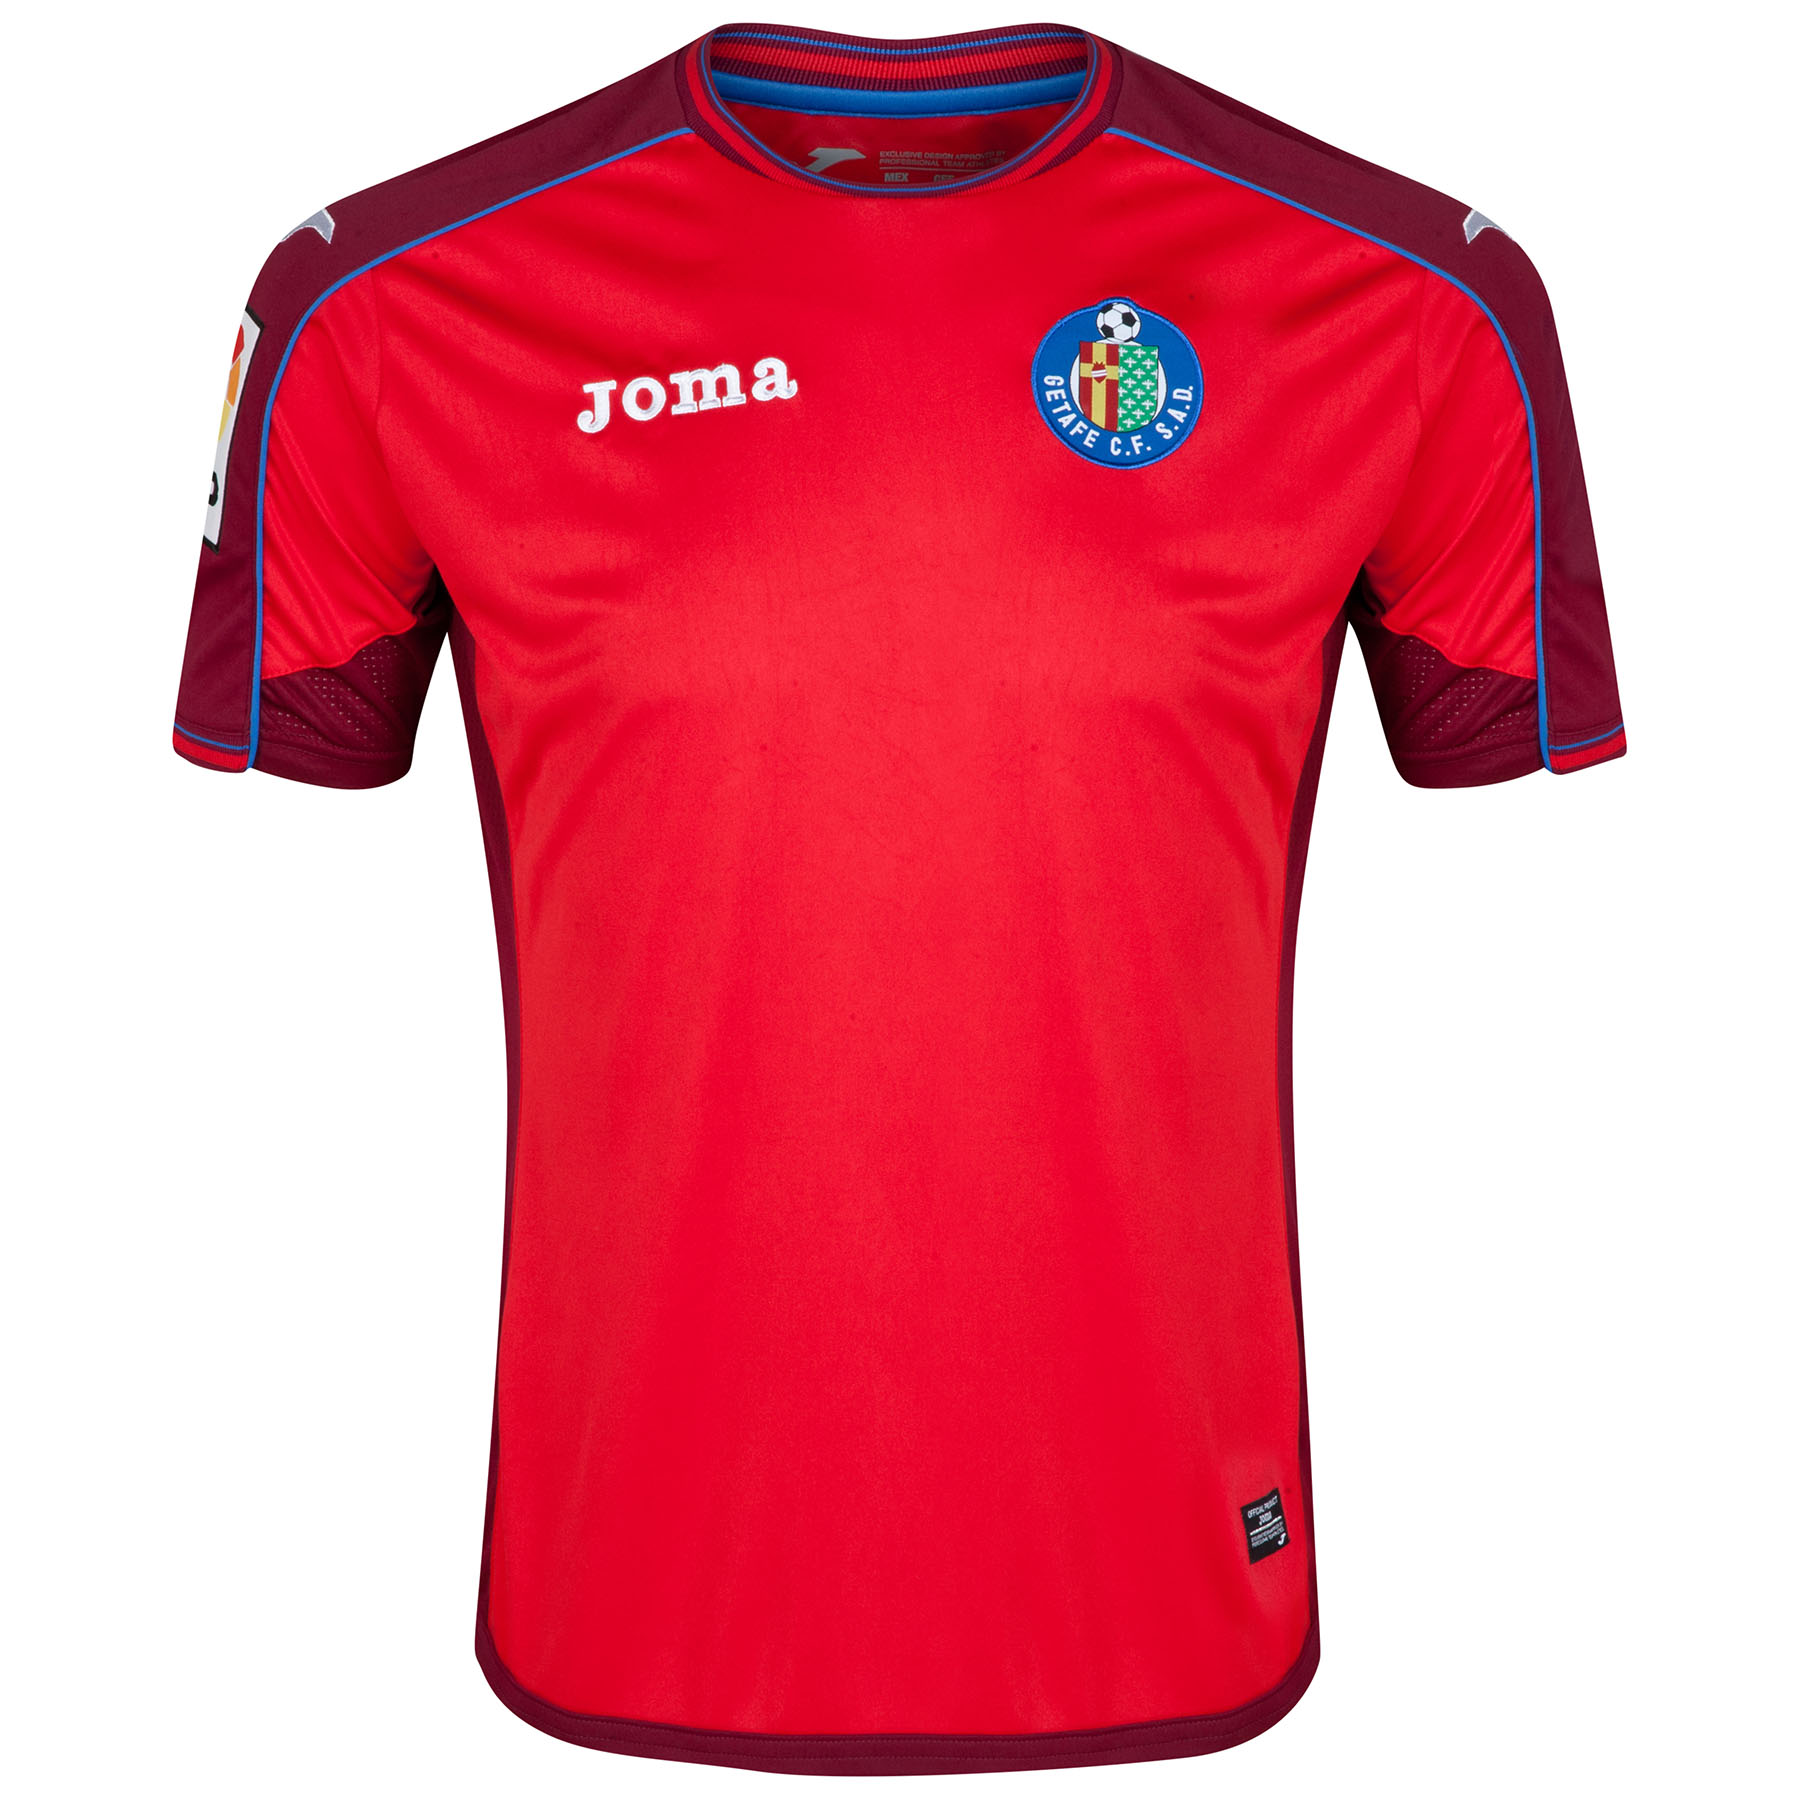 Getafe Away Shirt 2014/15